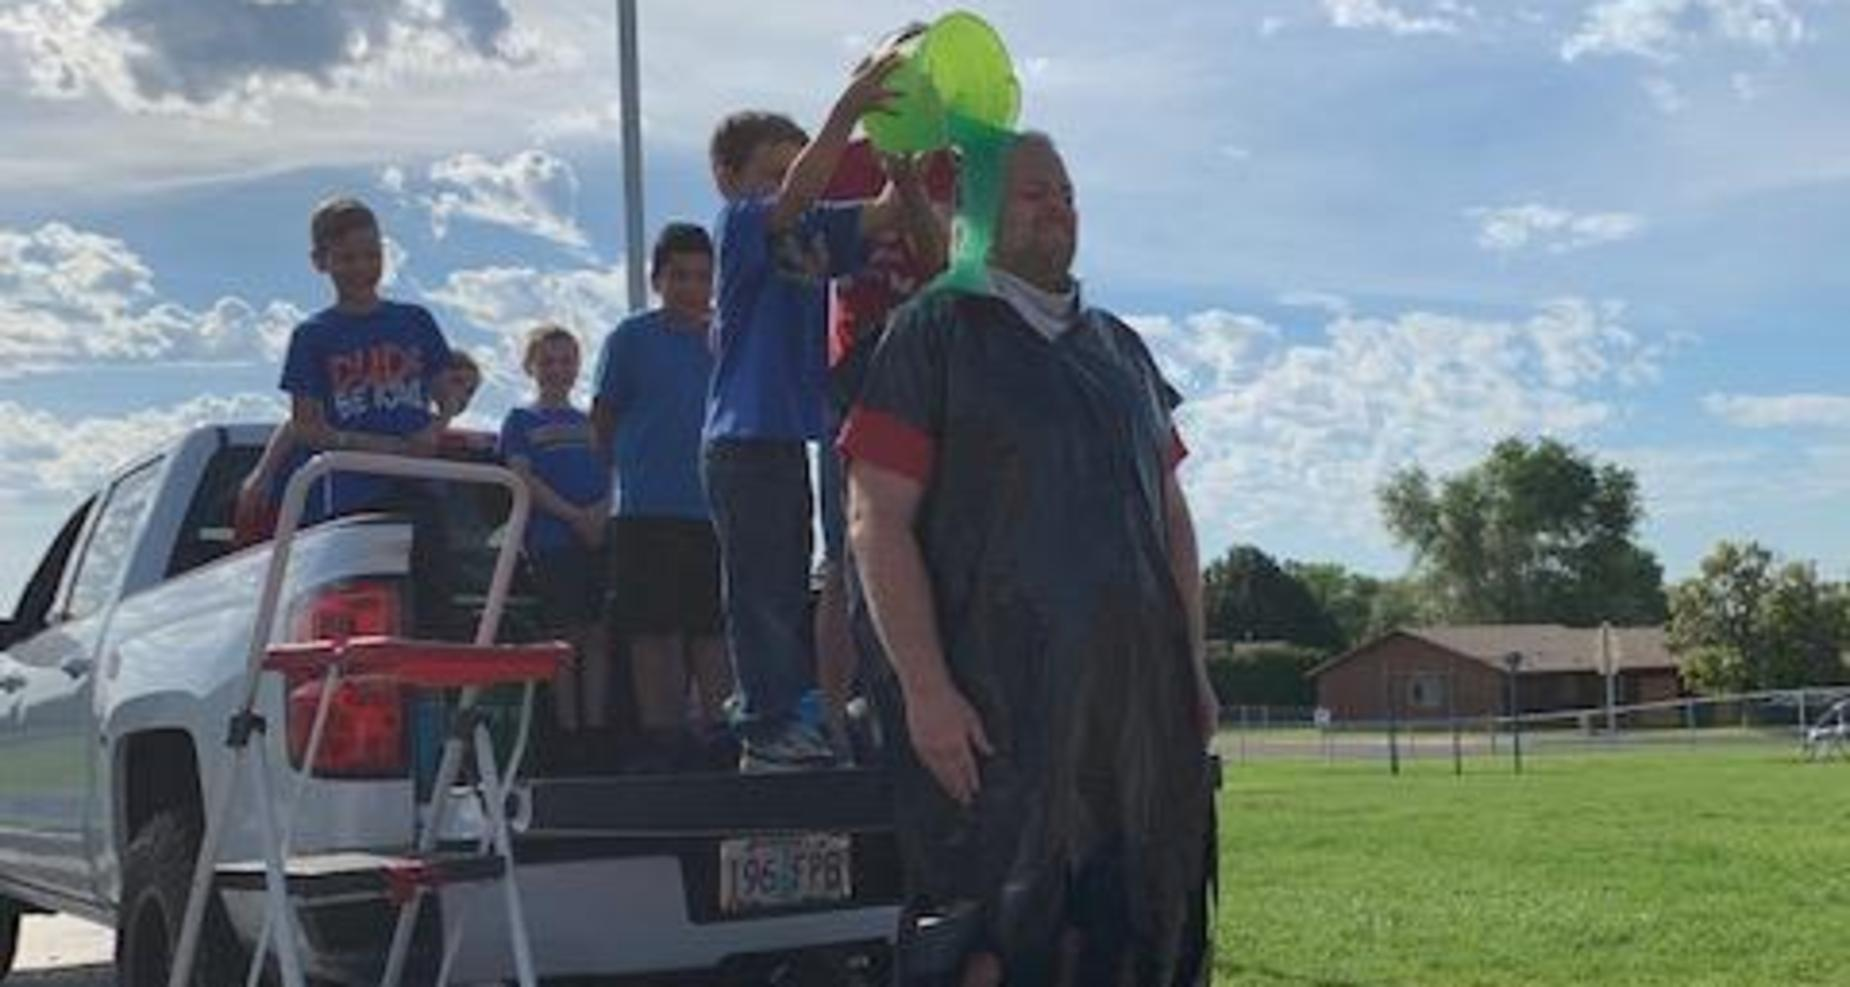 Mr. Farley gets slimed.